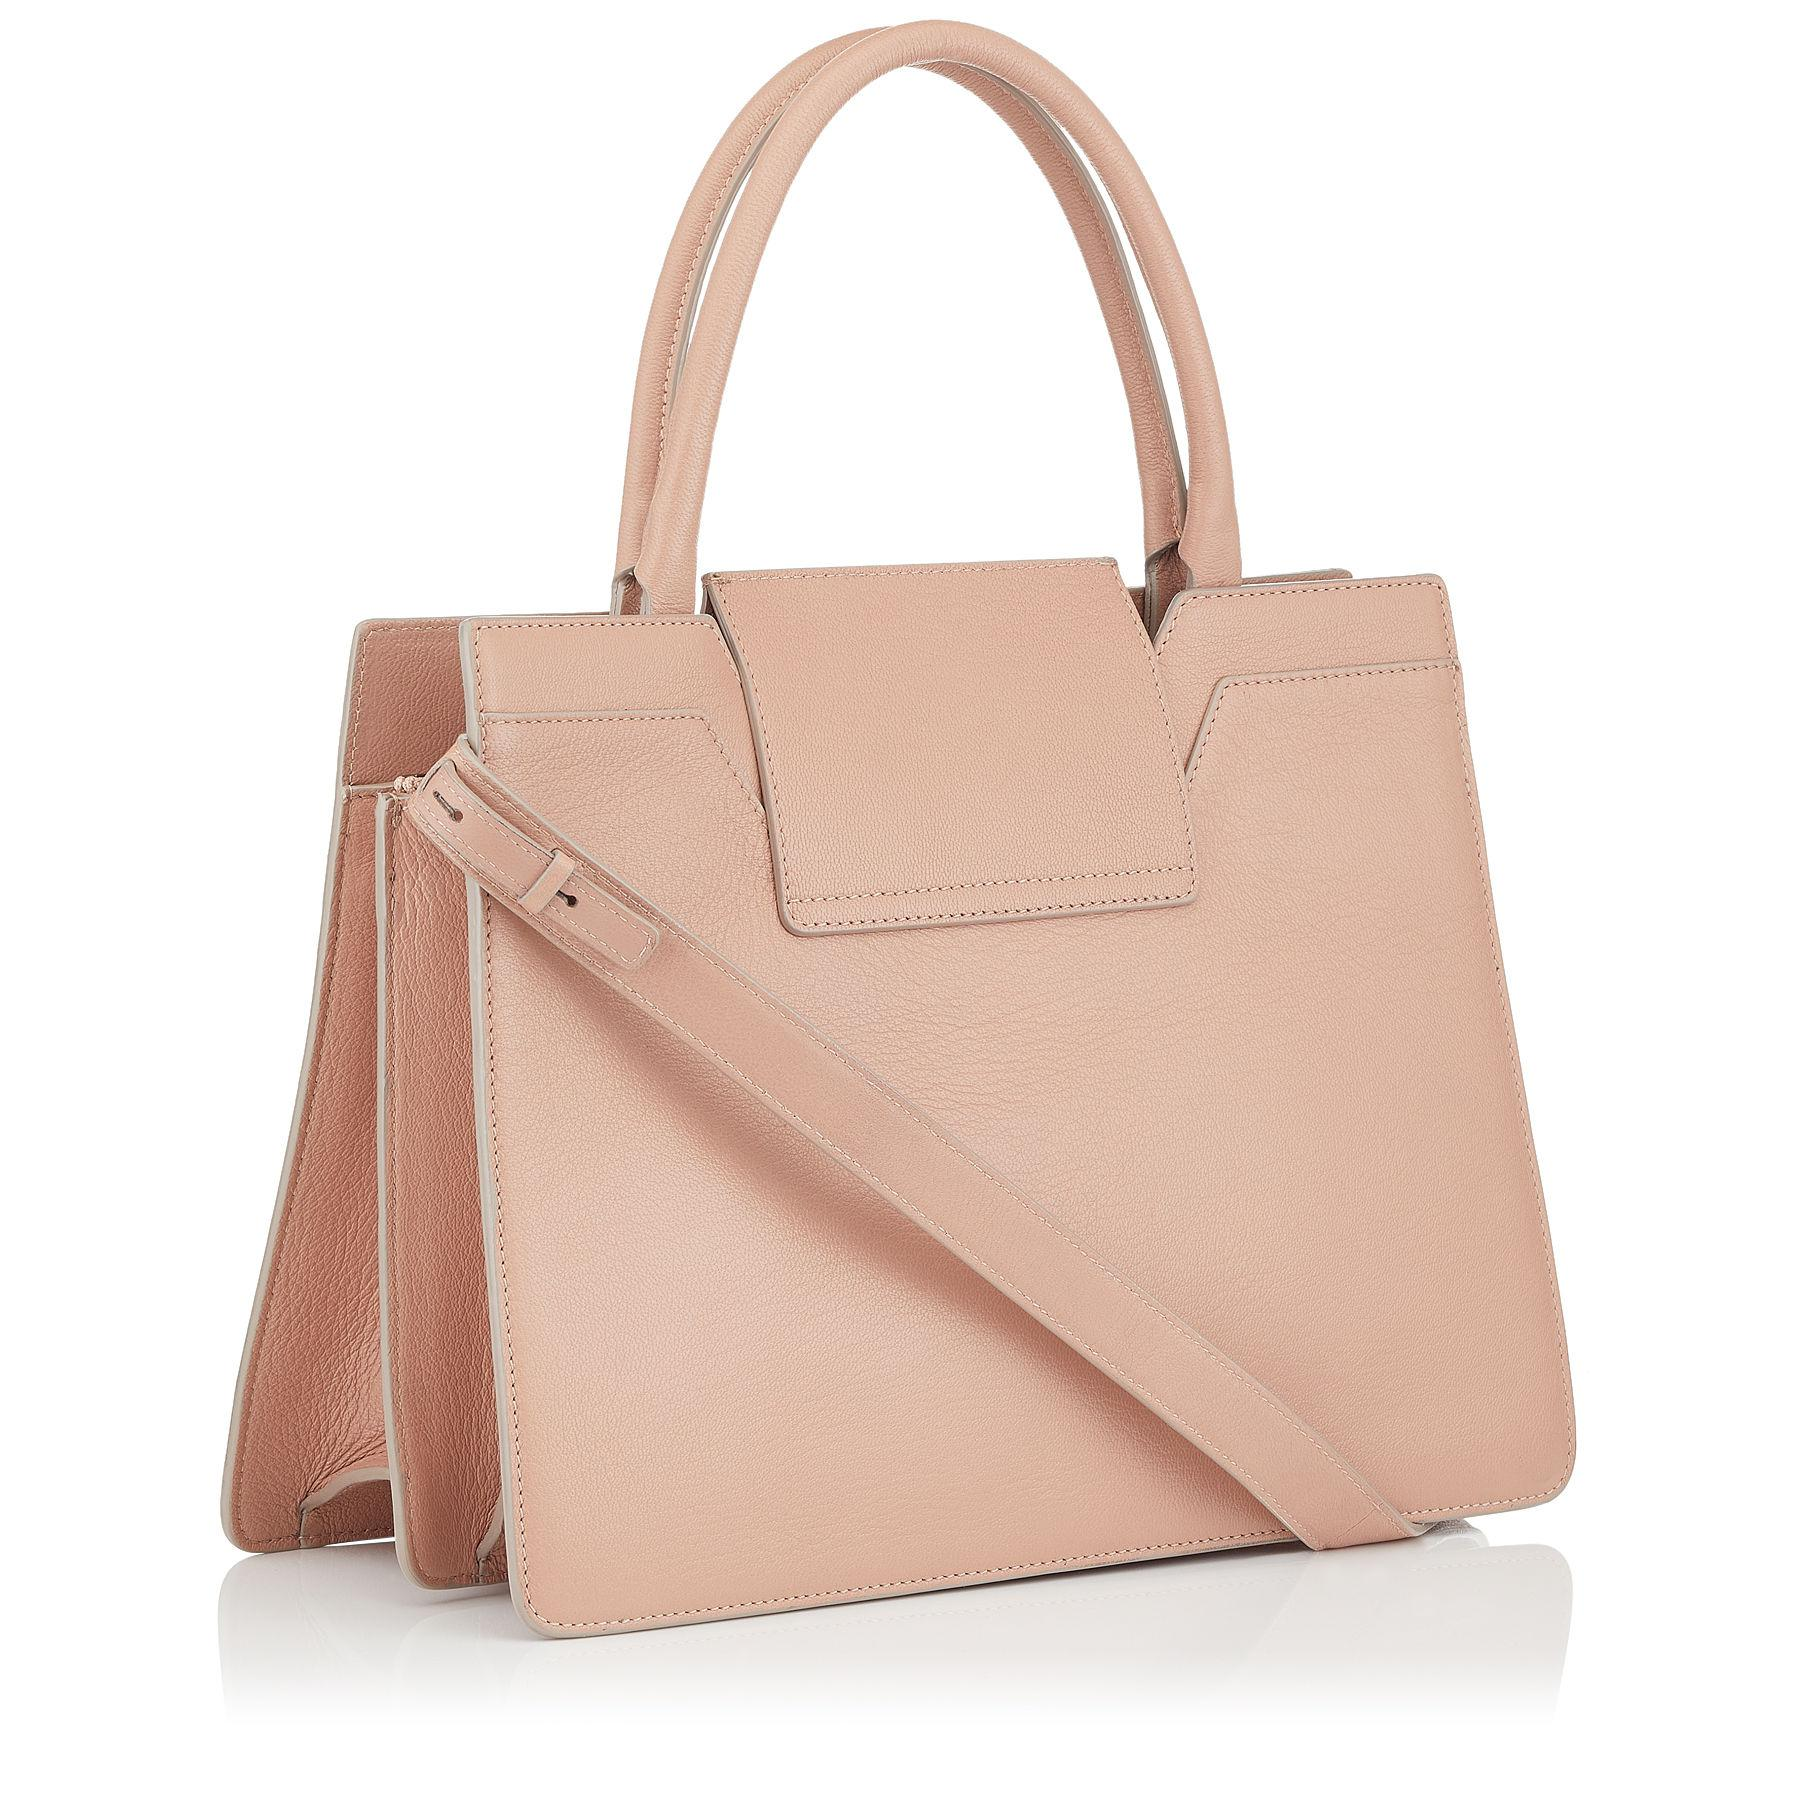 Jimmy Choo Leather Rebel Tote in Pink